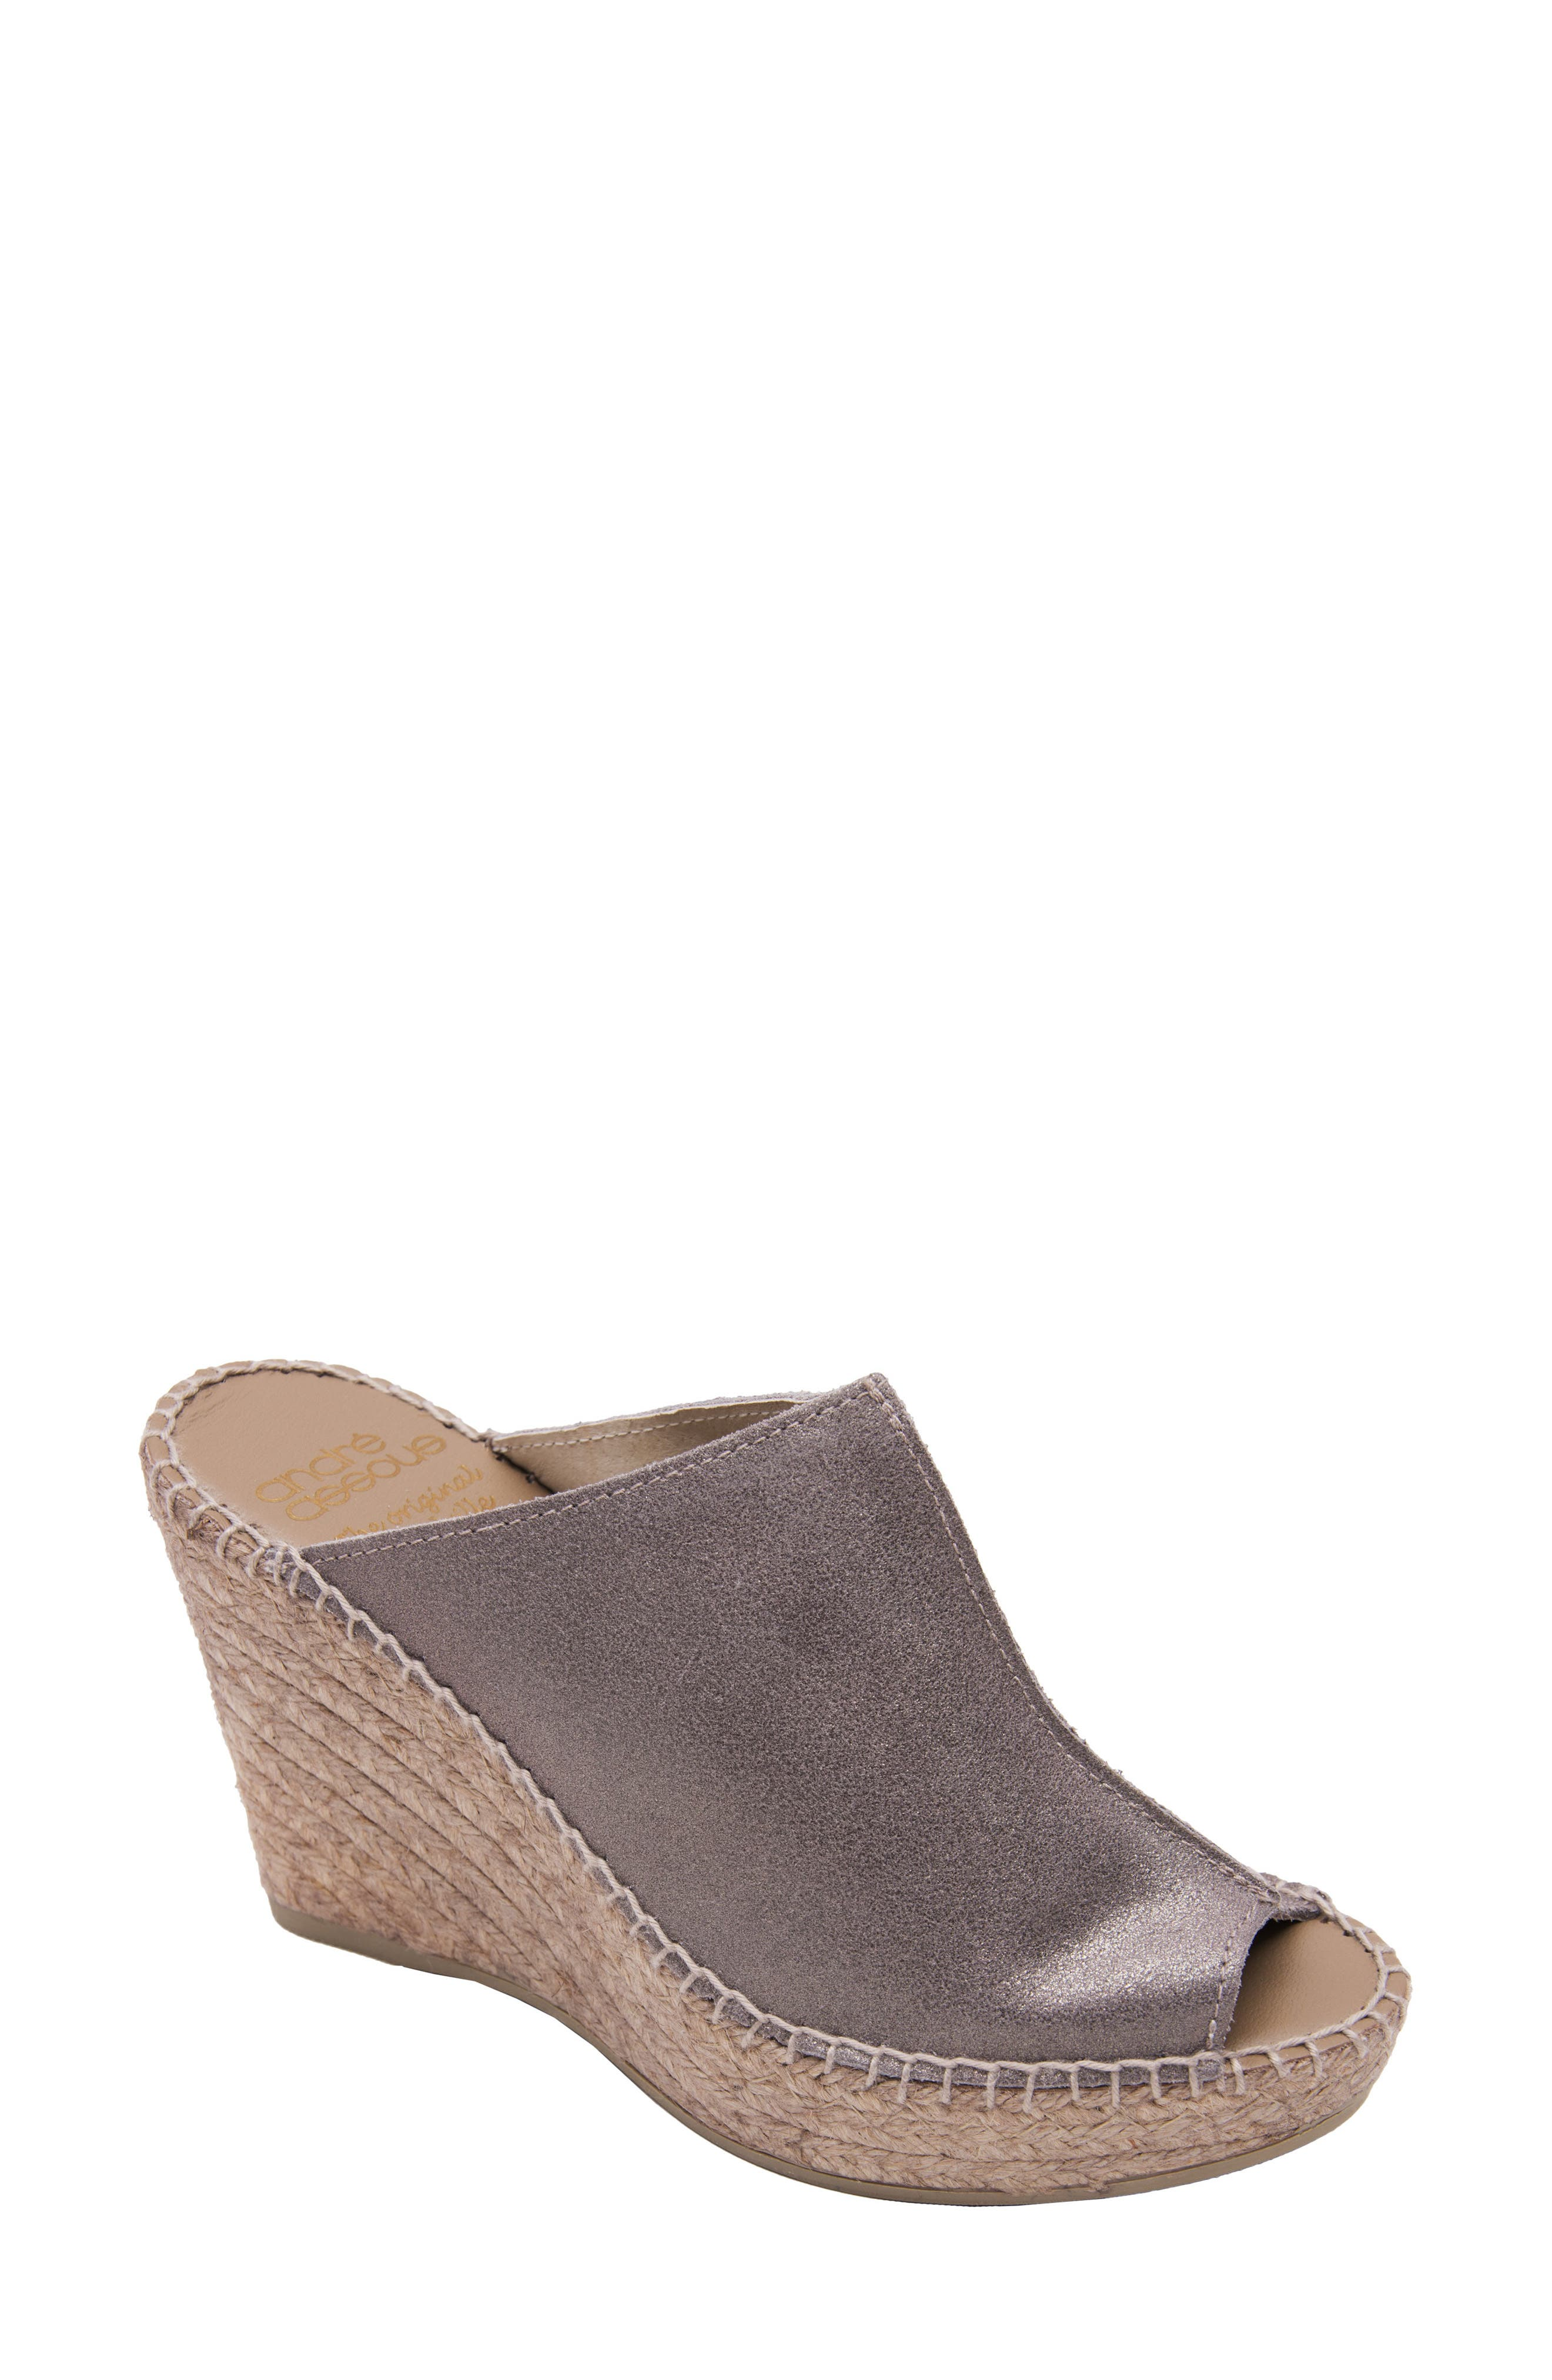 ANDRE ASSOUS Cici Espadrille Wedge in Pewter Suede